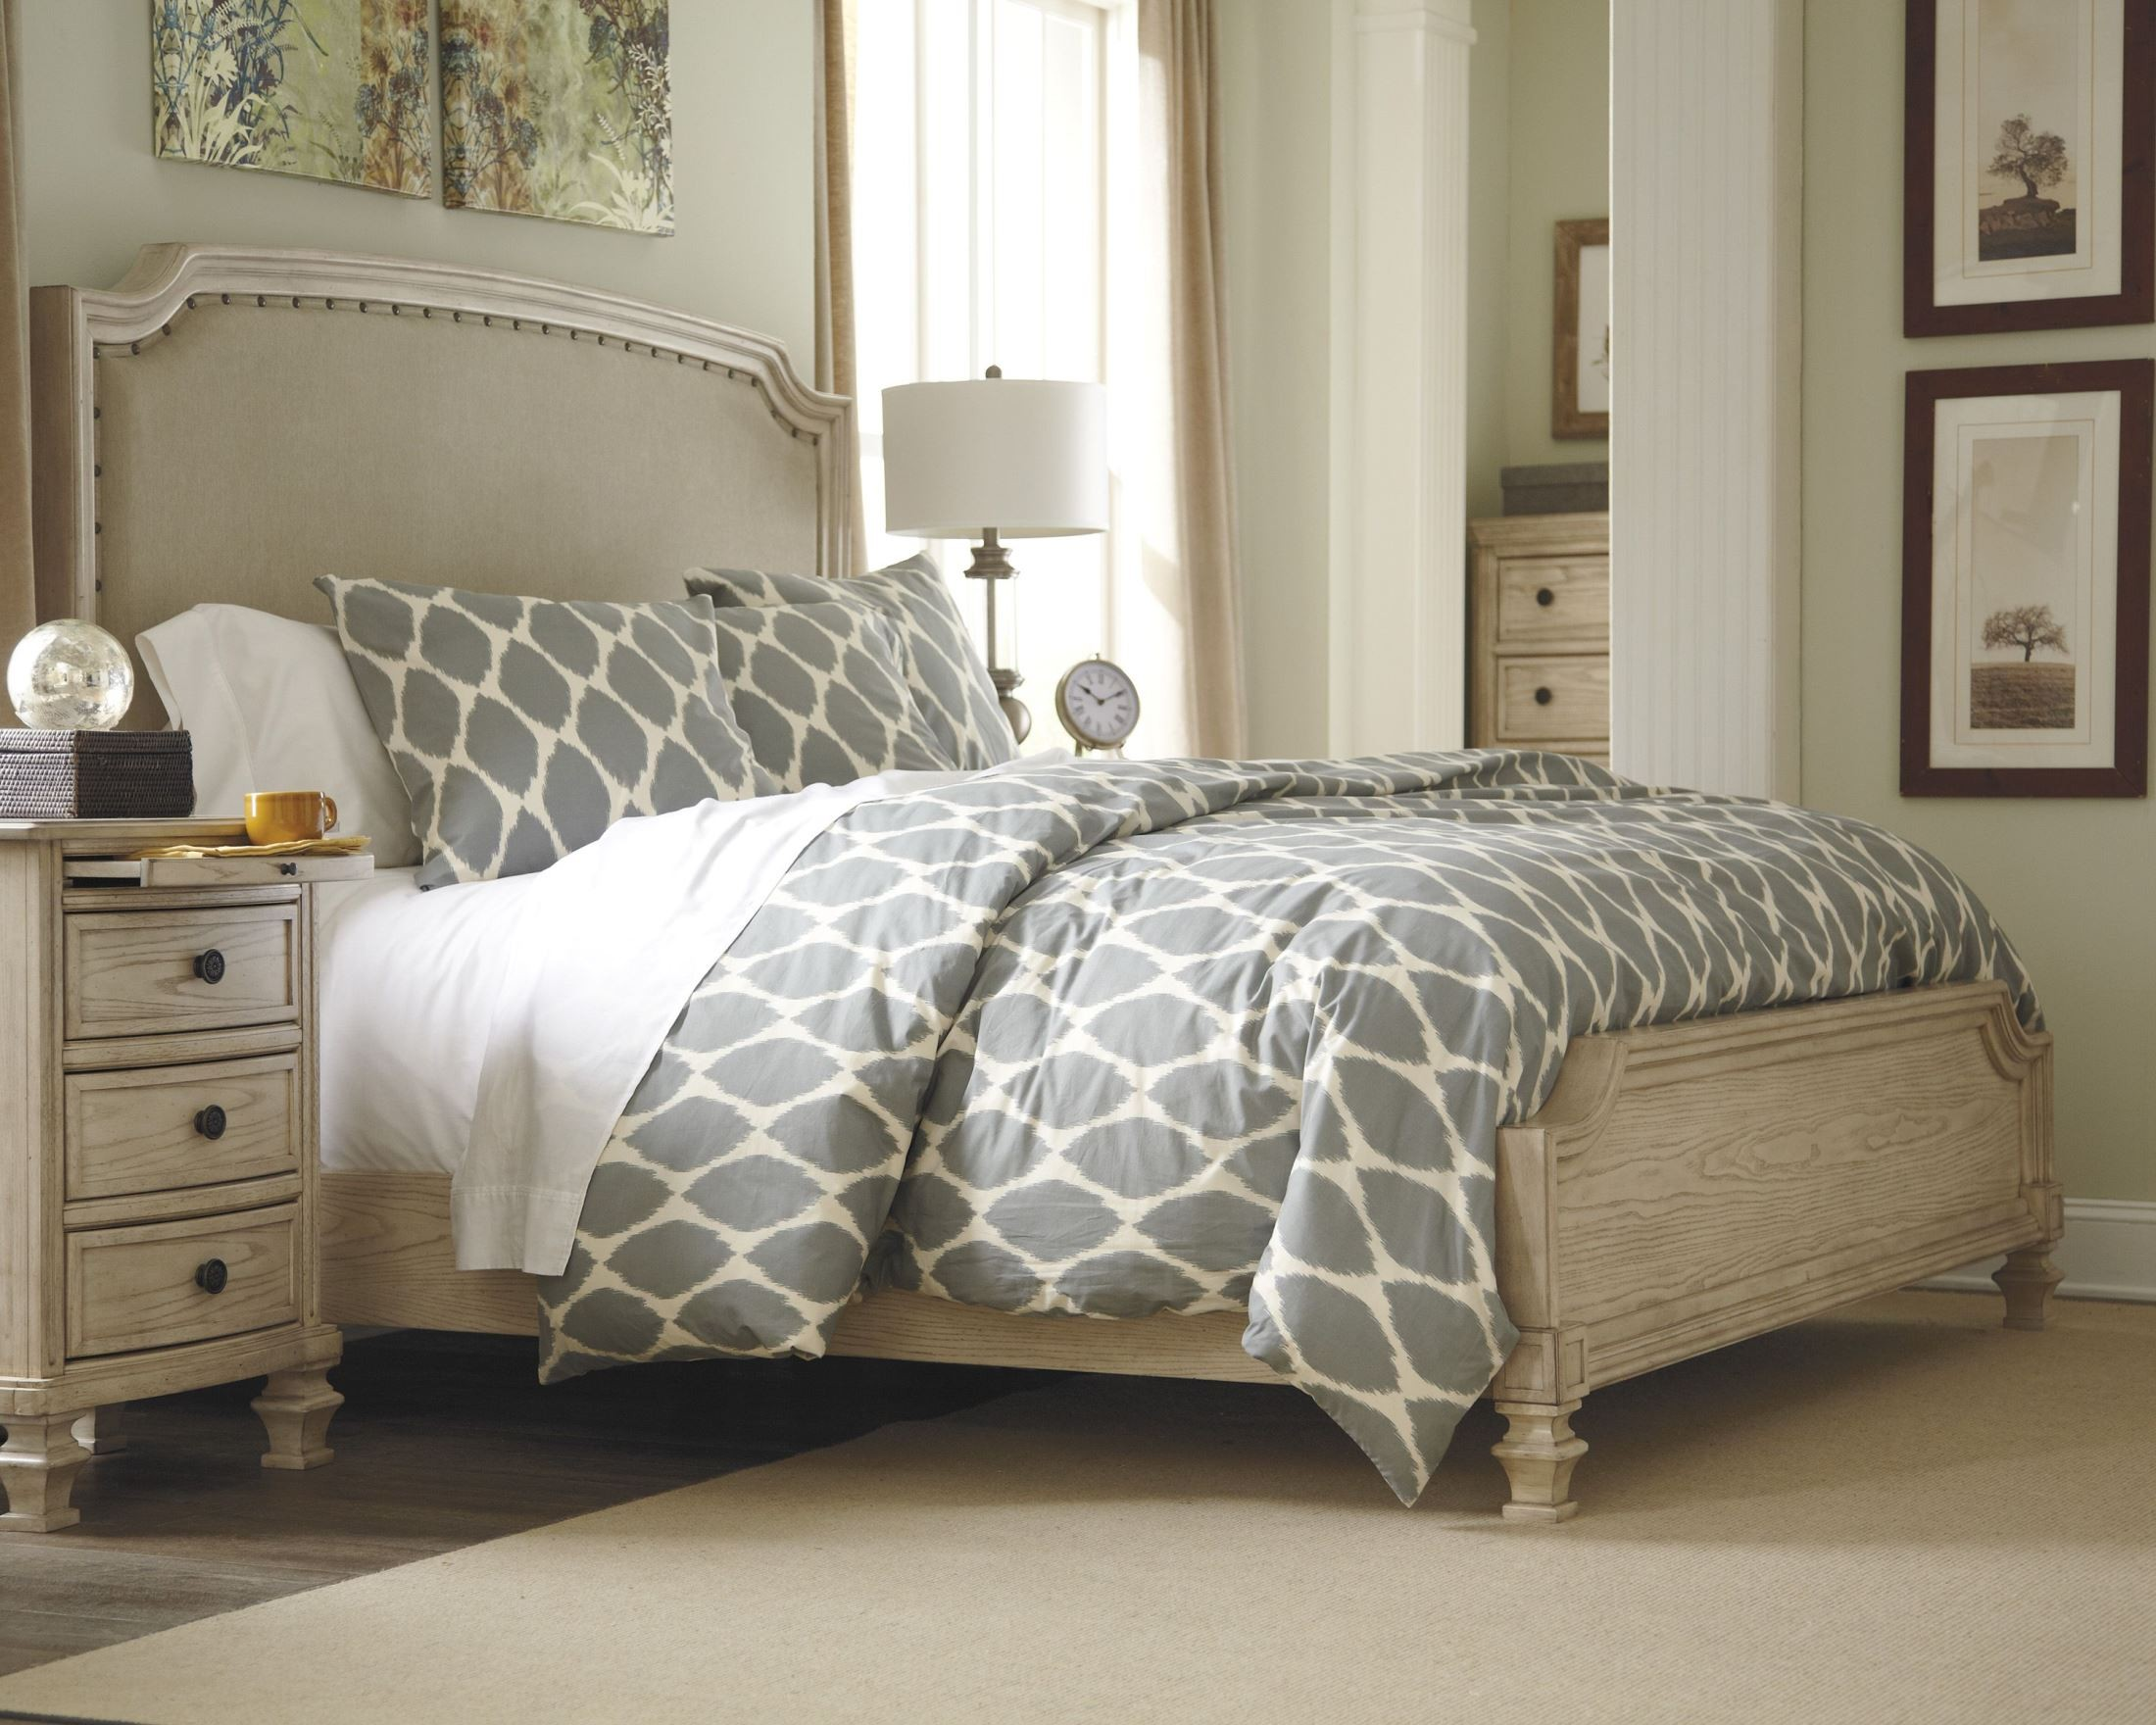 Demarlos Queen Upholstered Panel Bed From Ashley B693 77